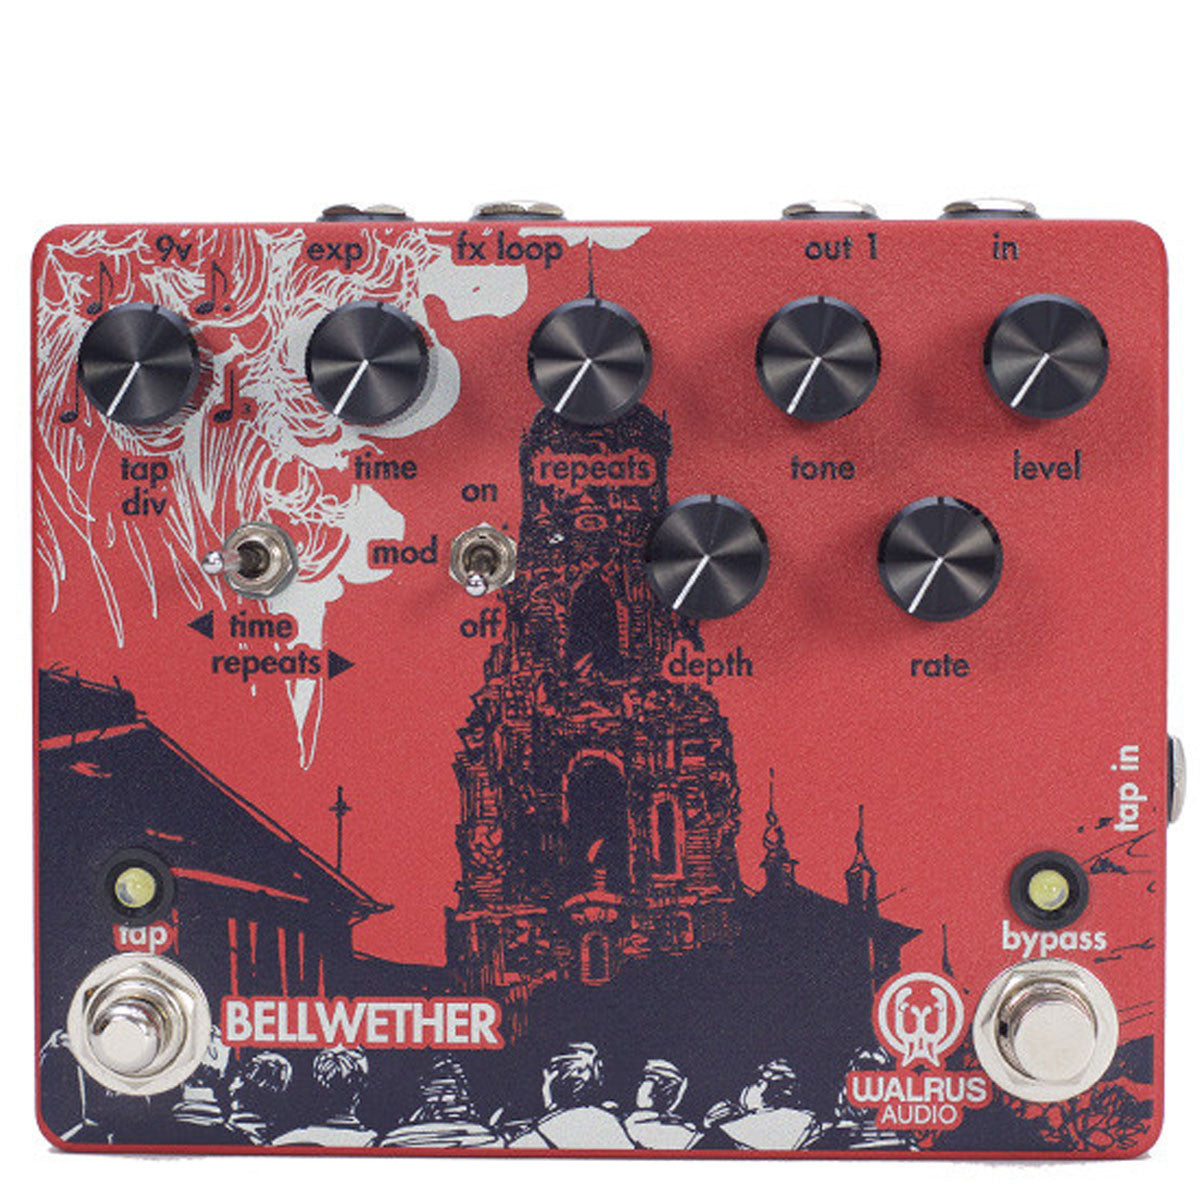 Walrus Audio - BELLWETHER - Analog Delay - Vintage Guitar Boutique